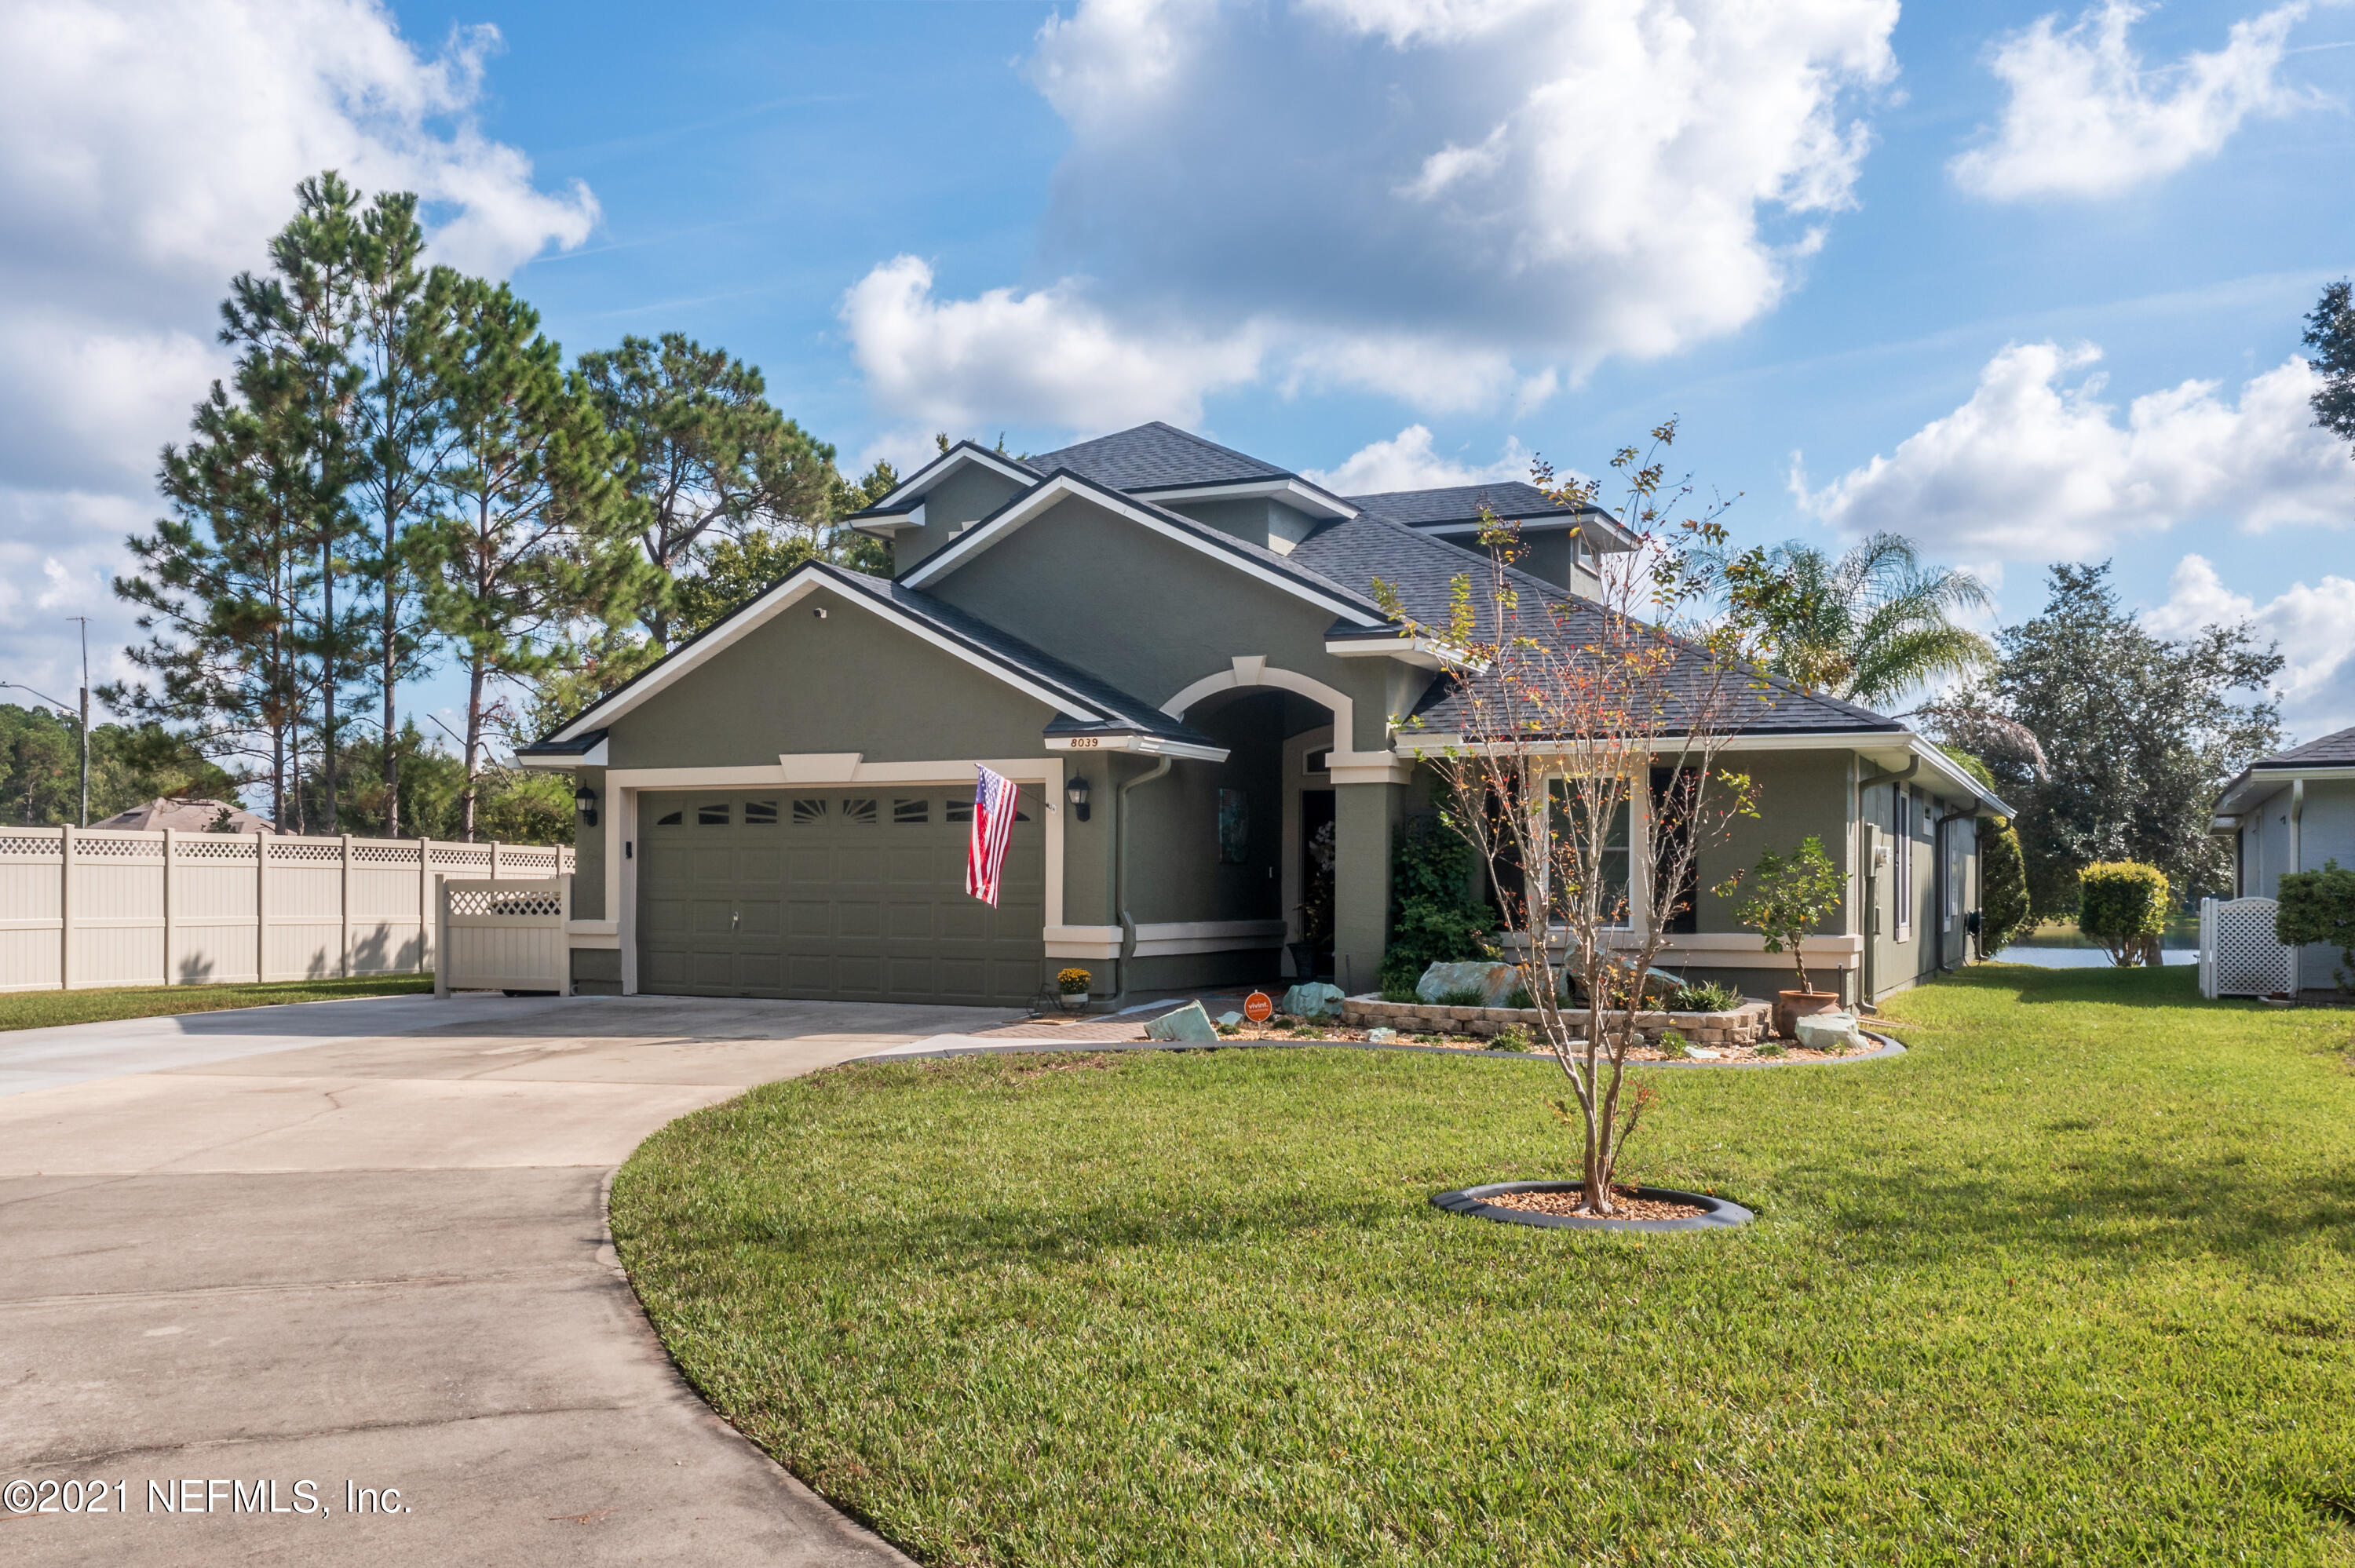 8039 SHADWELL, JACKSONVILLE, FLORIDA 32244, 5 Bedrooms Bedrooms, ,30 BathroomsBathrooms,Residential,For sale,SHADWELL,1136775